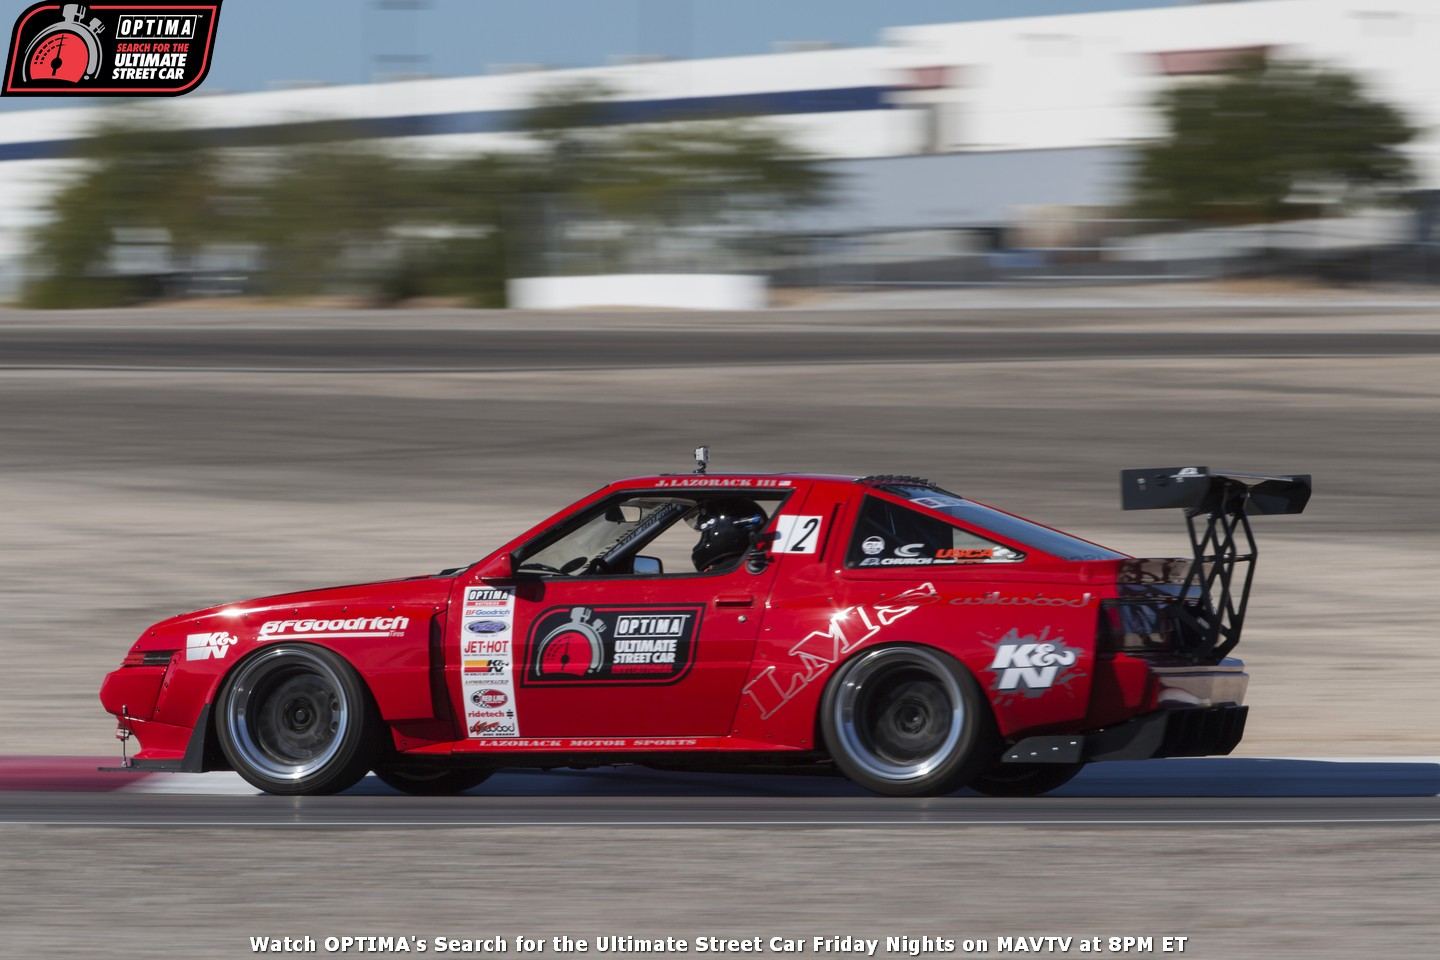 p-John-Lazorack-1988-Chrysler-Conquest-OPTIMA-Ultimate-Street-Car-Invitational-2014-BFGoodrich-Hot-Lap-Challenge_34.jpg